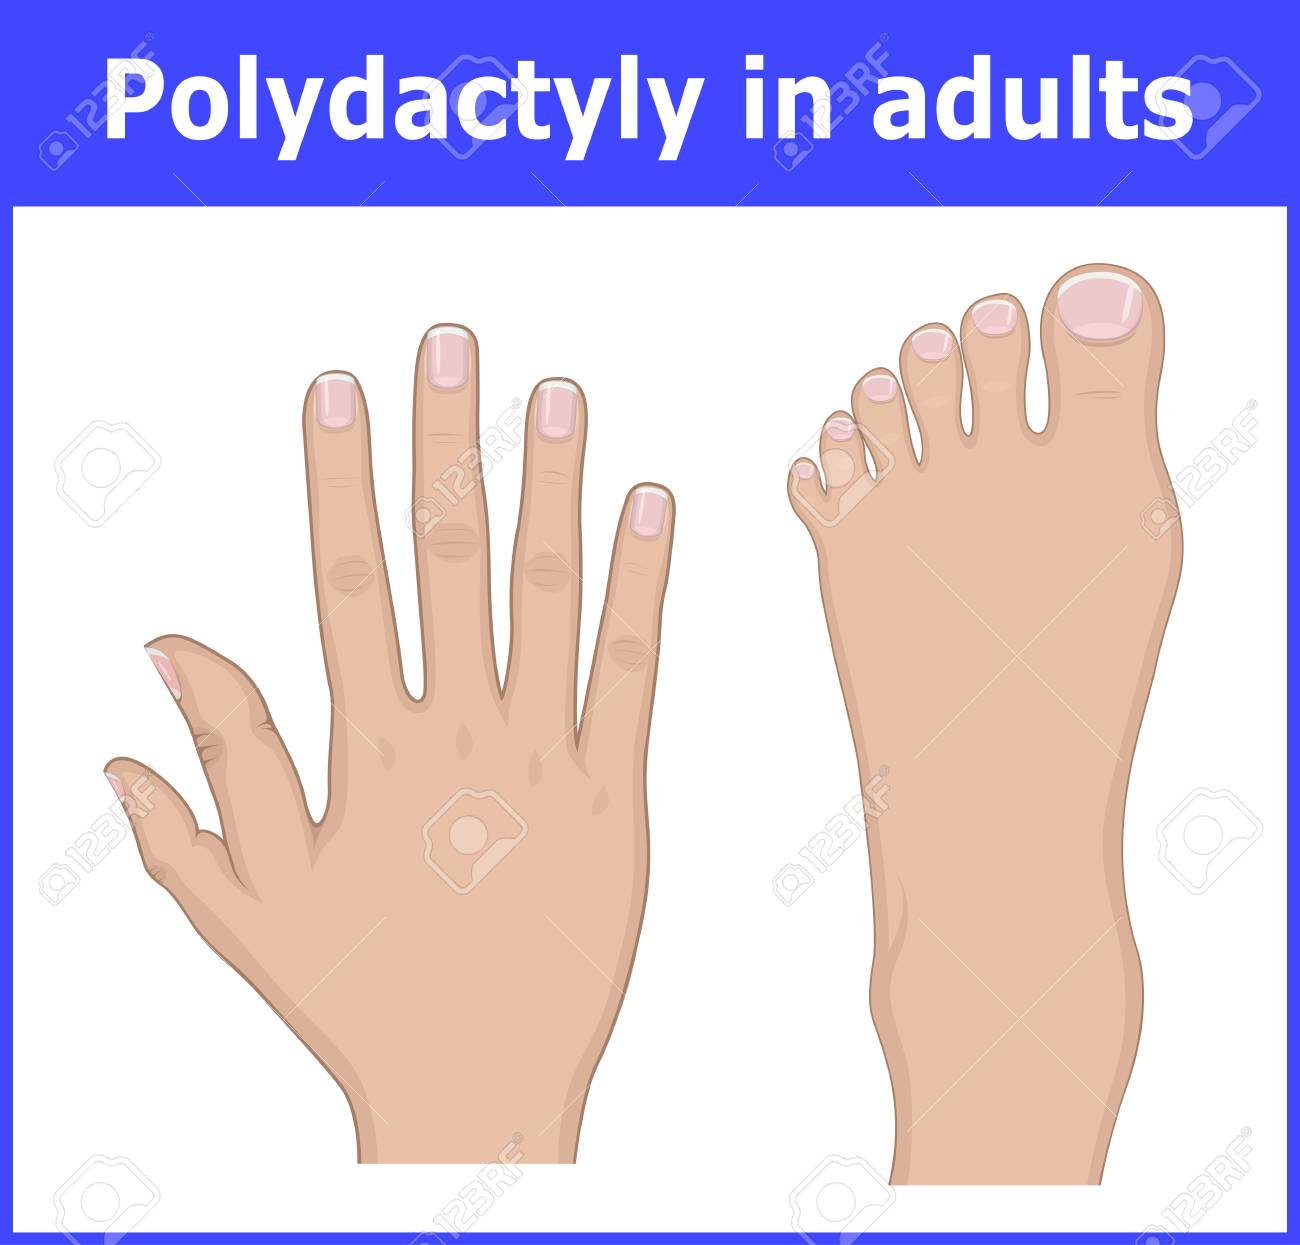 Illustration of Polydactyly of the foot and hands of an adult - 98382470